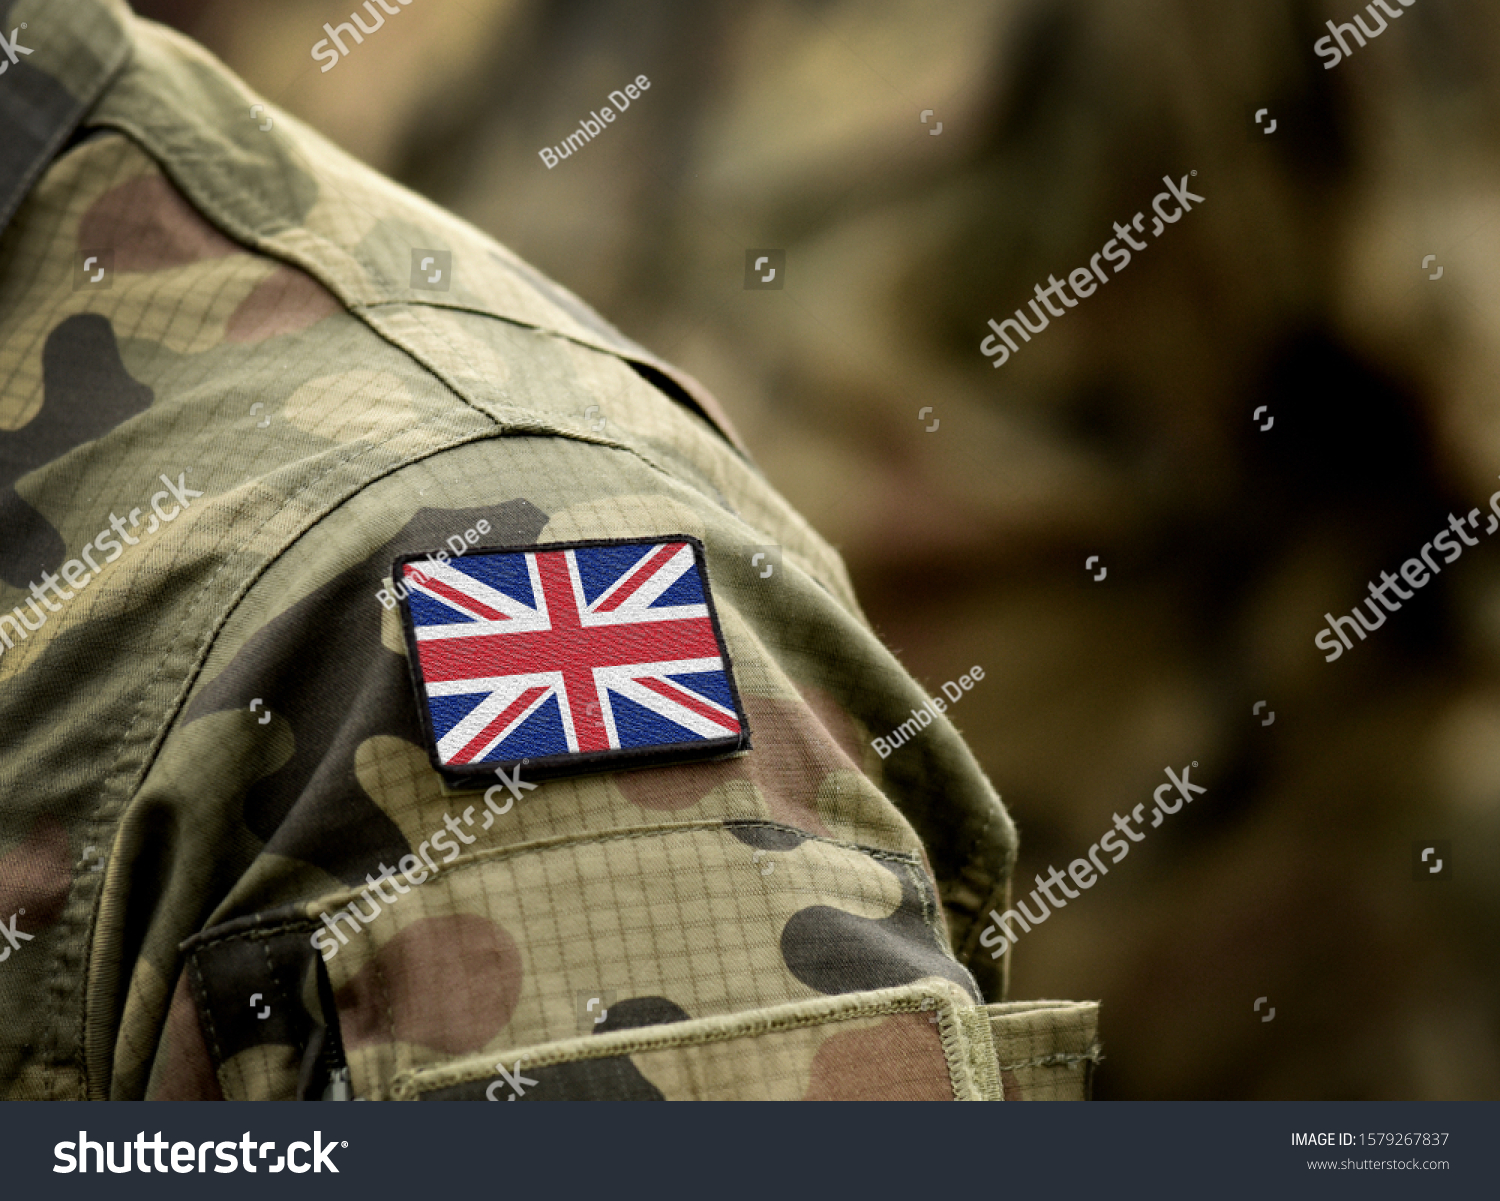 Flag of United Kingdom on military uniform. UK Army. British Armed Forces, soldiers. Collage. #1579267837